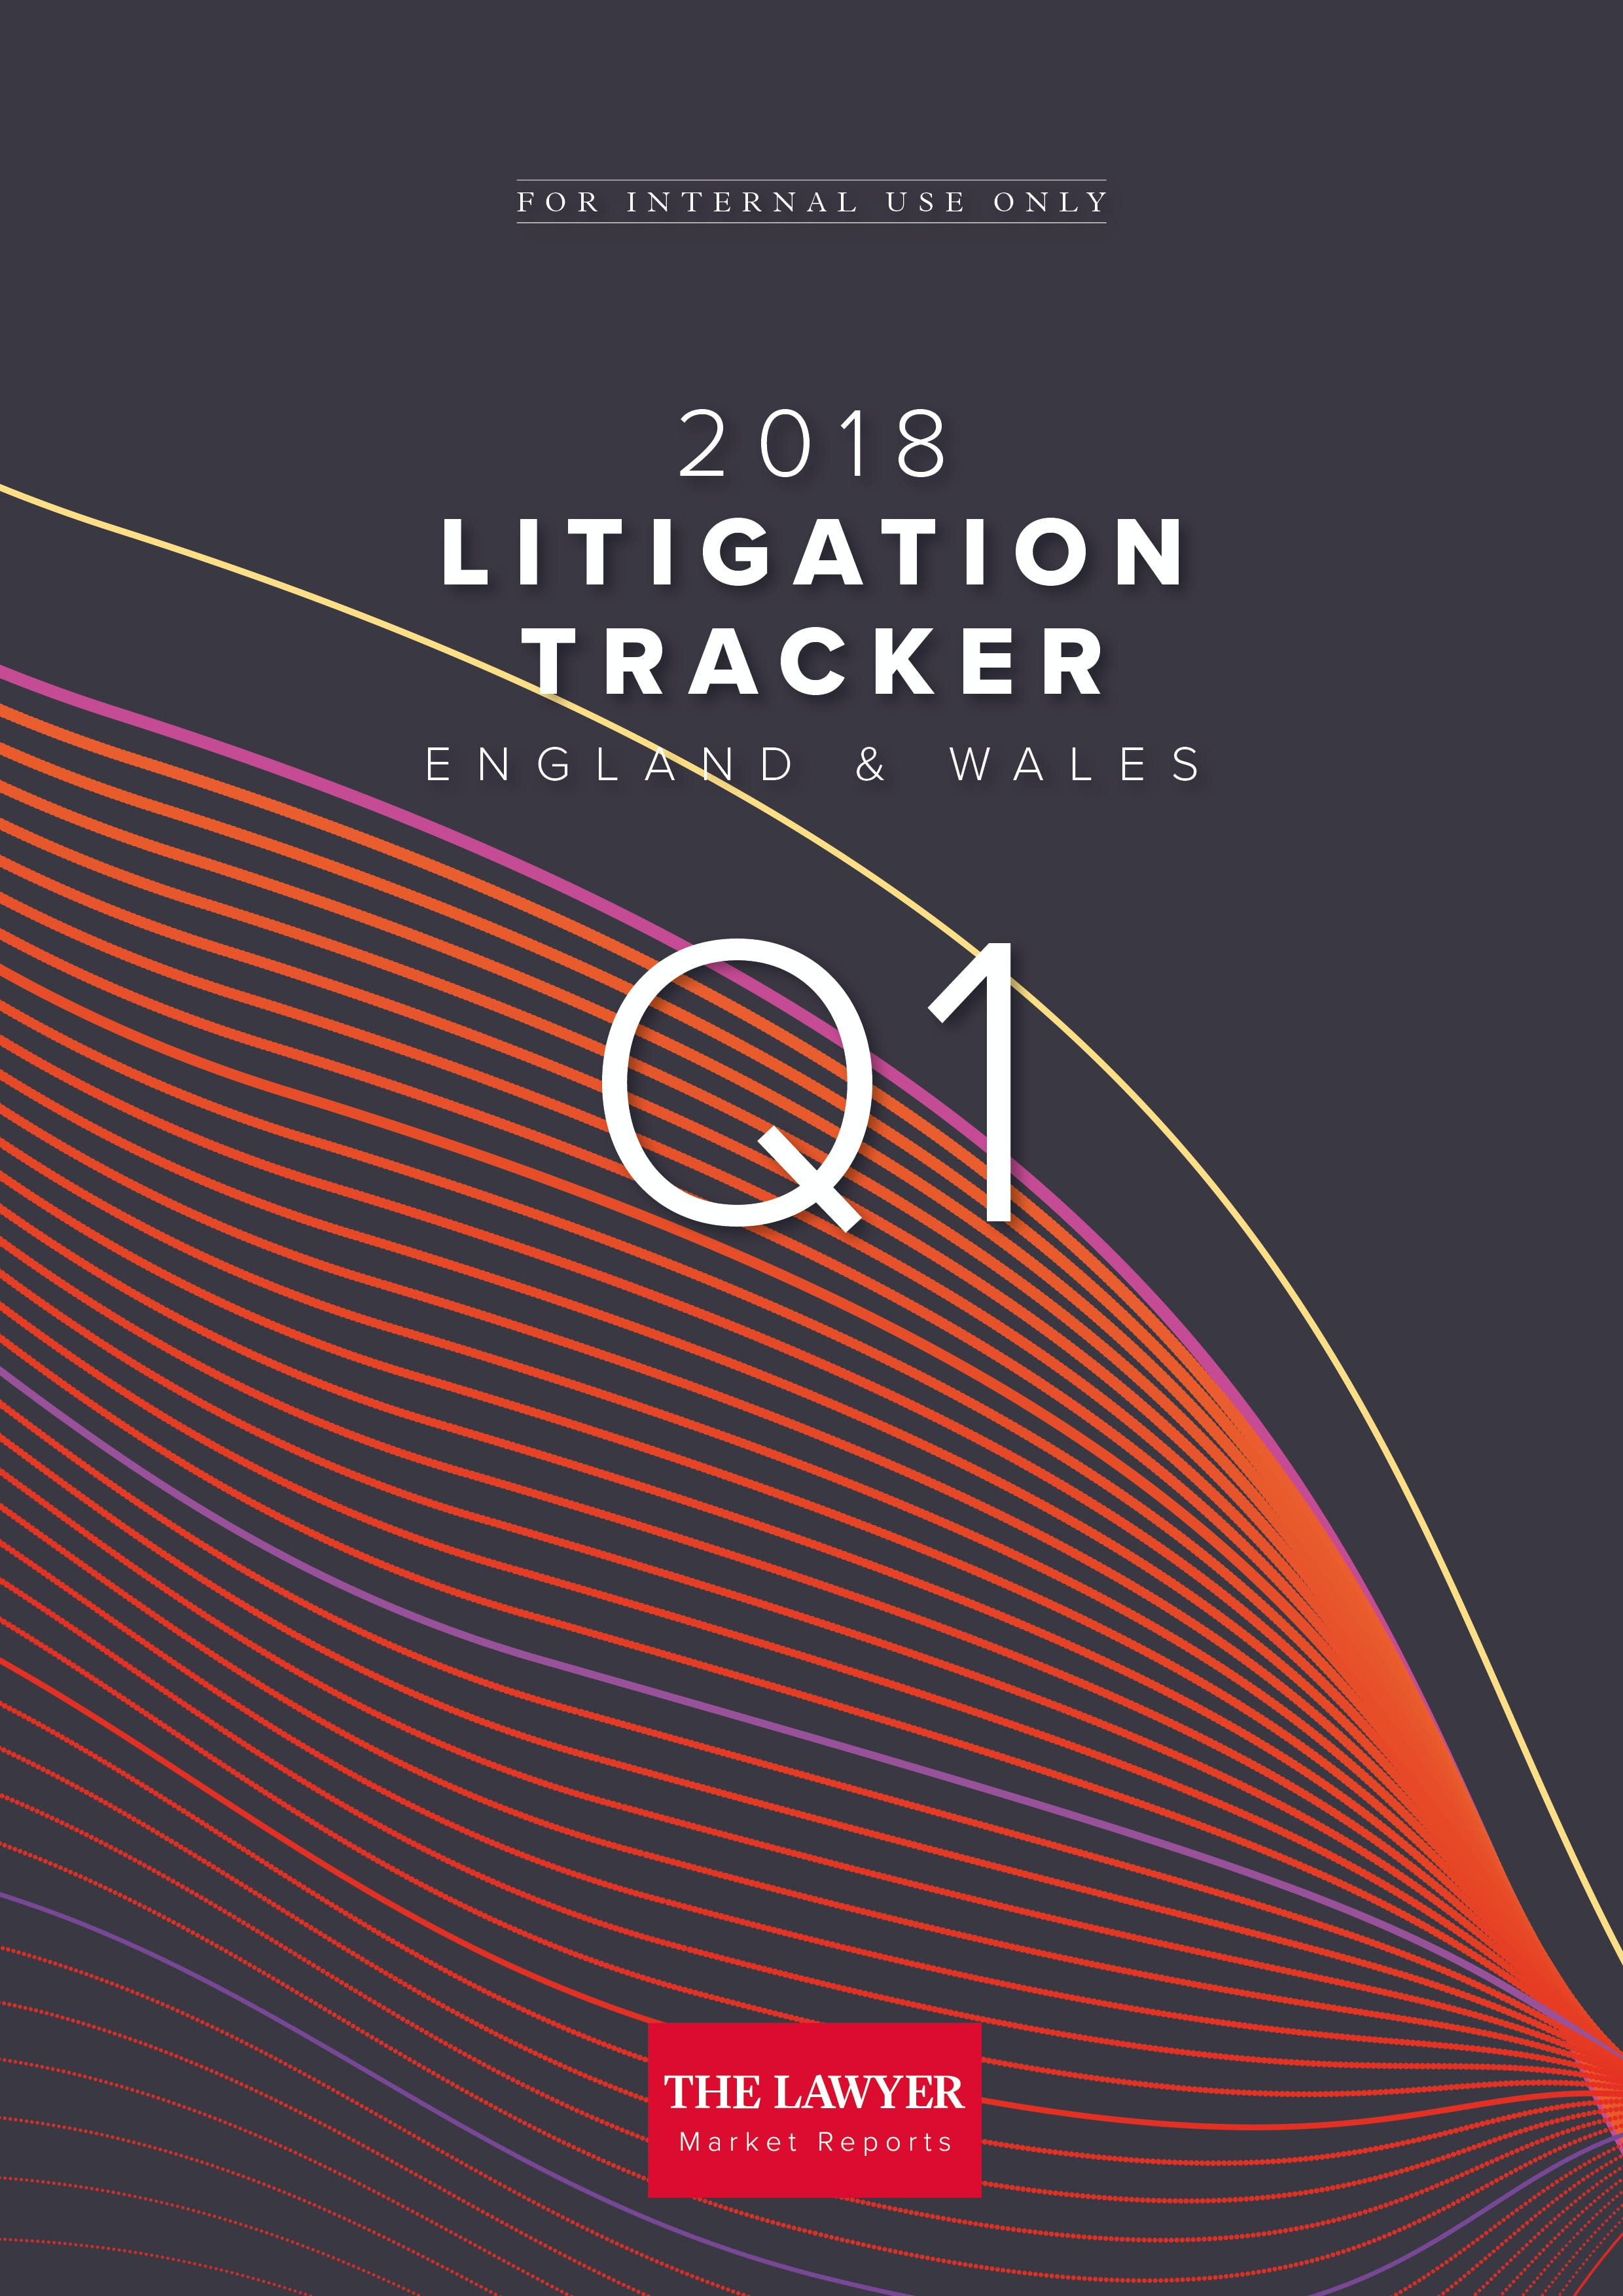 litigation tracker forms in house